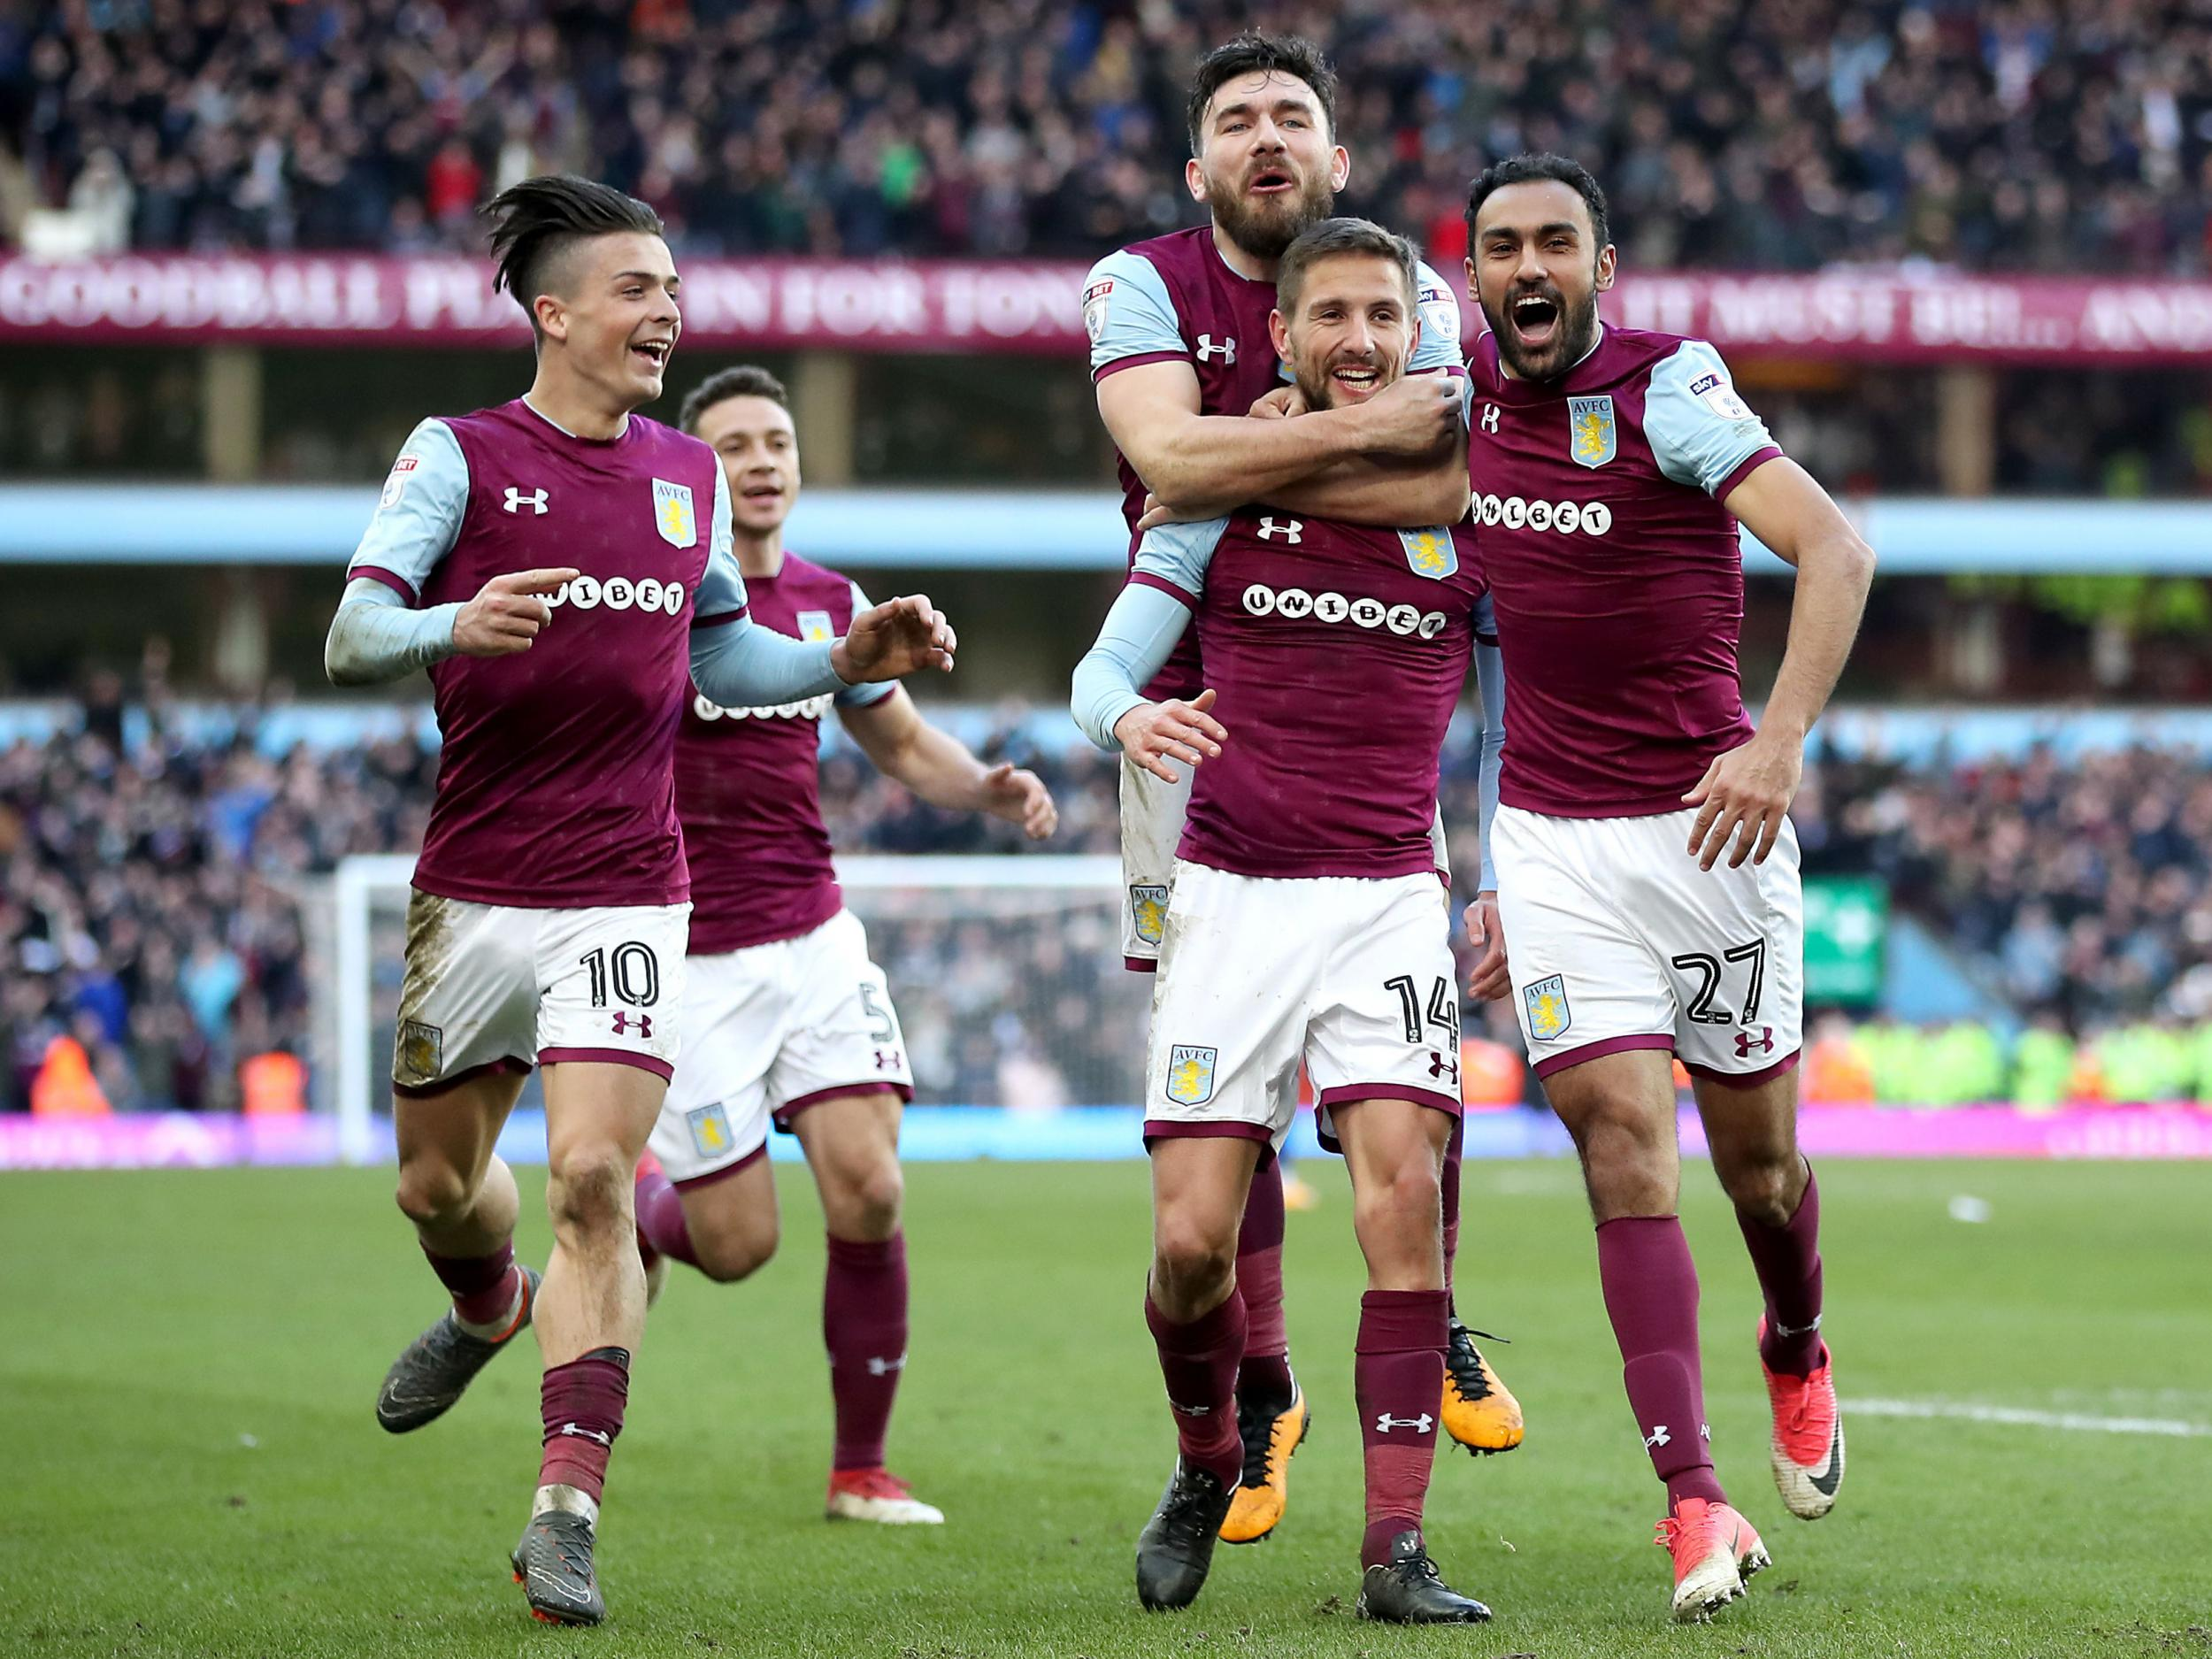 Aston Villa extend unbeaten league run against arch-rivals Birmingham City to move up to second